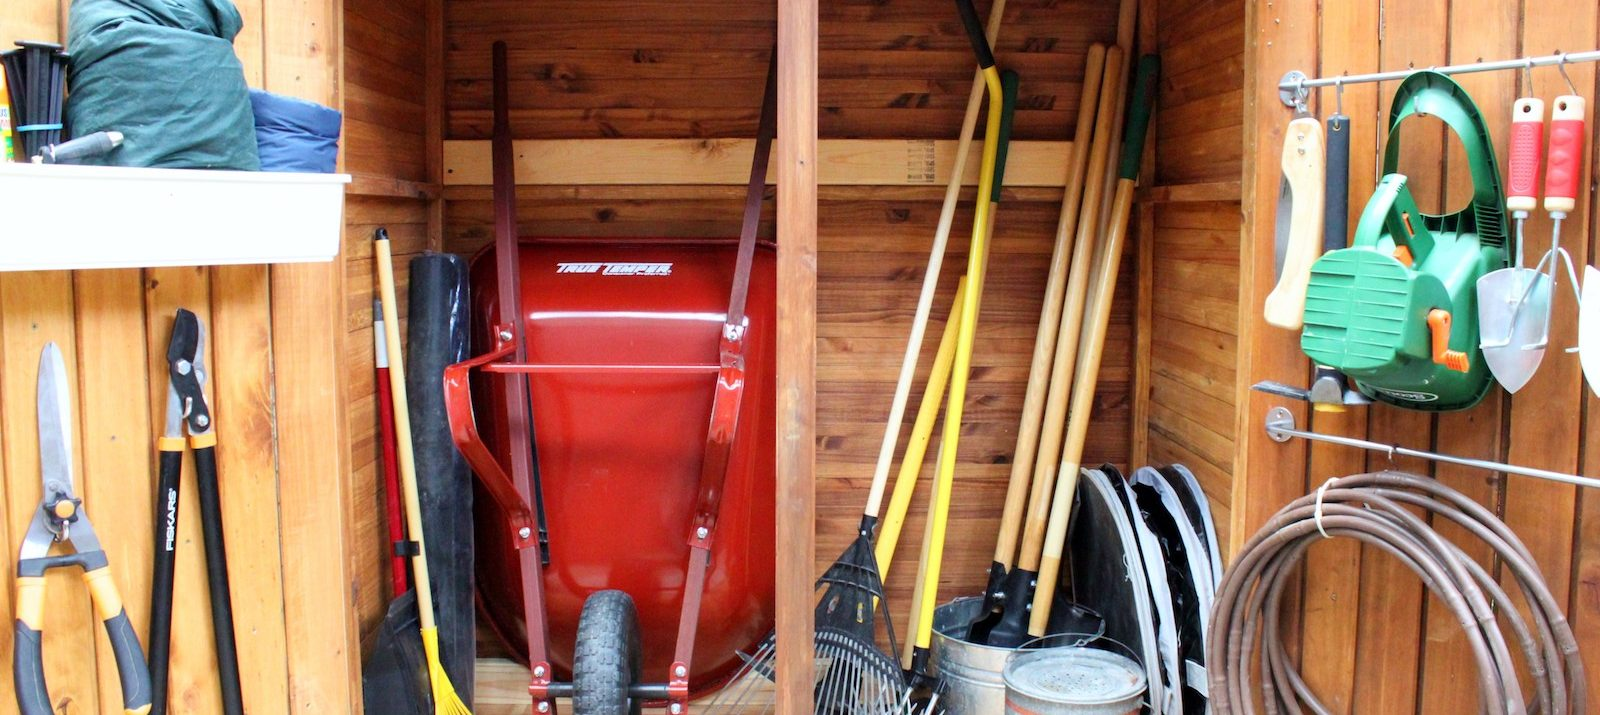 backyard storage ideas, tips, hacks, and solutions